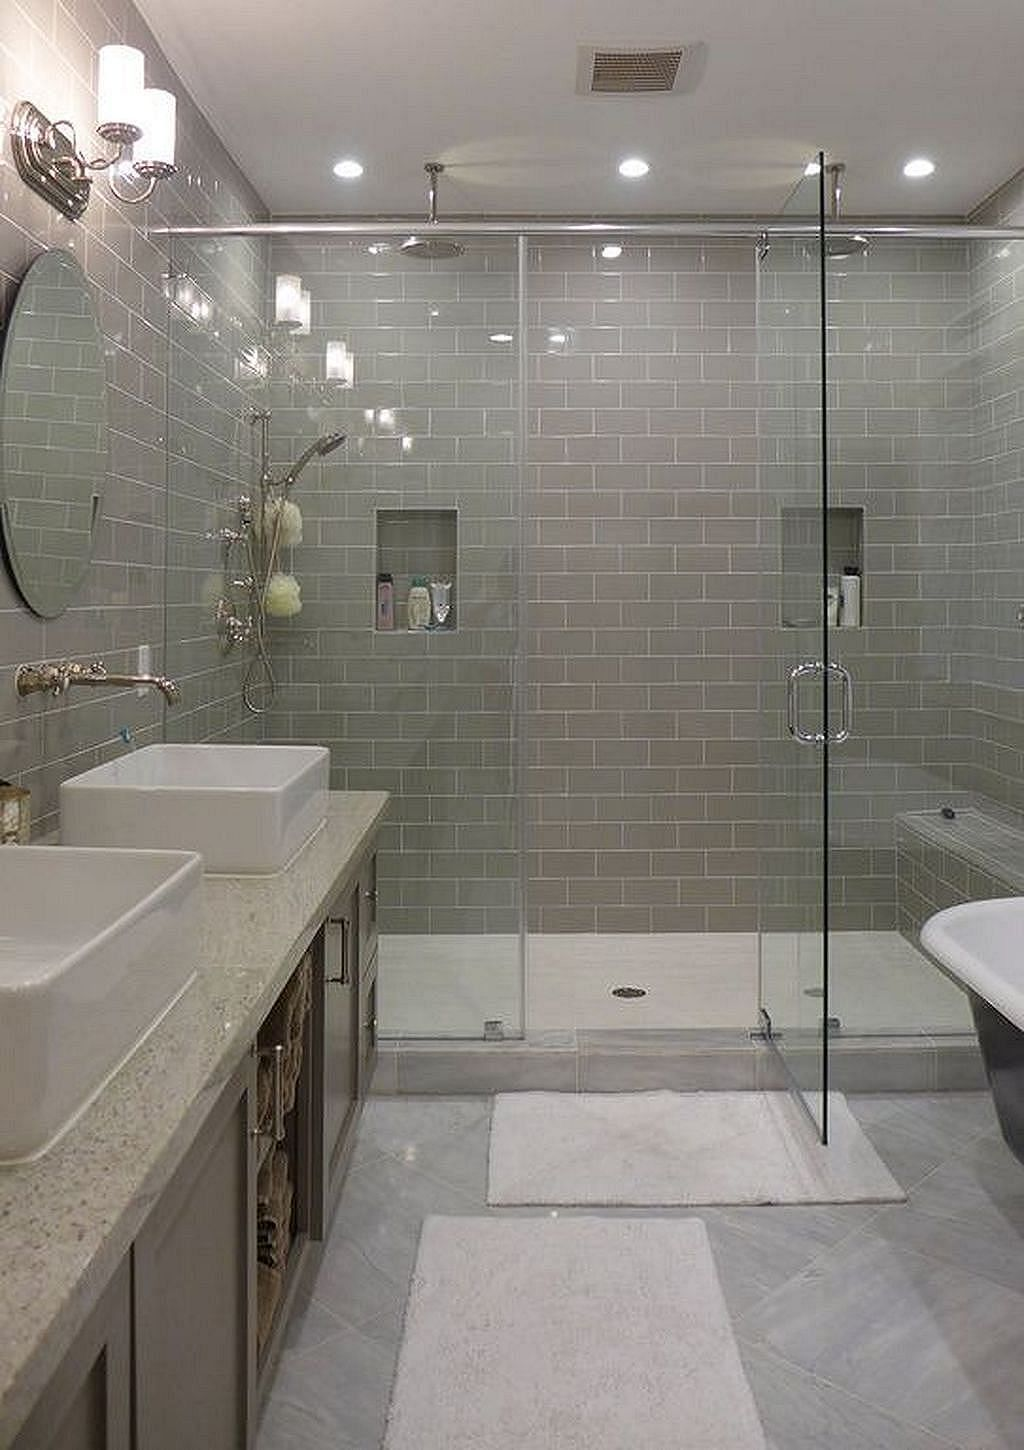 Elegant And Modern Bathroom Shower Tile Master Bath Ideas 28 Contemporary Master Bathroom Bathroom Remodel Shower Small Bathroom Remodel